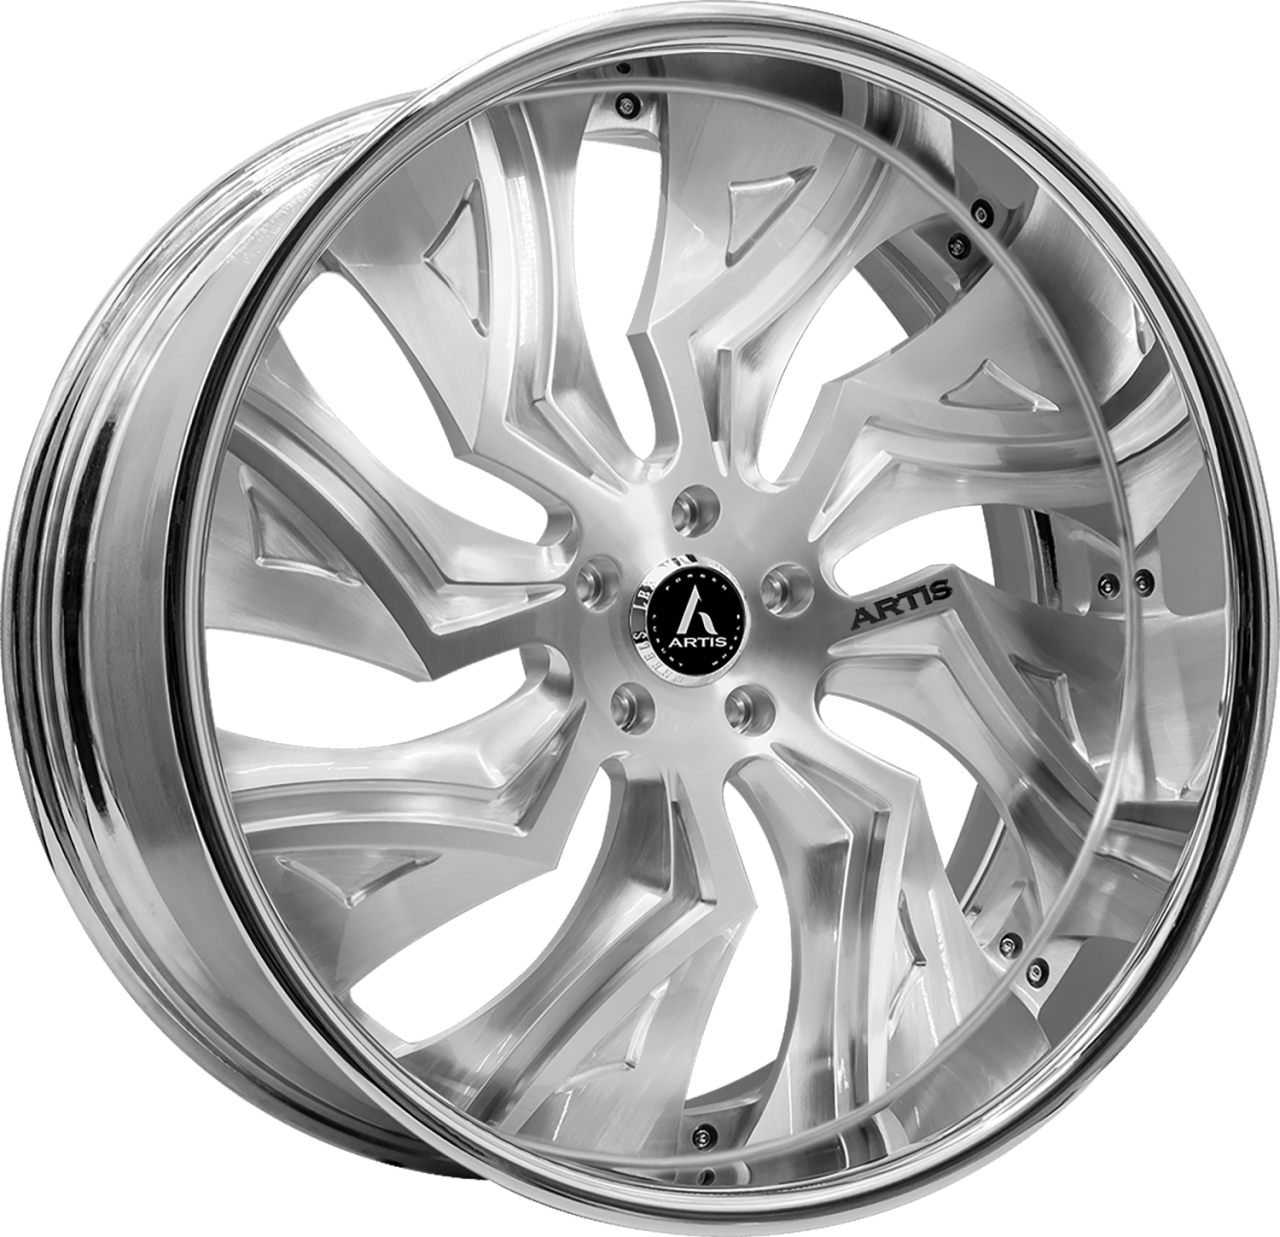 Artis Forged Buckeye-M wheel with Brushed finish